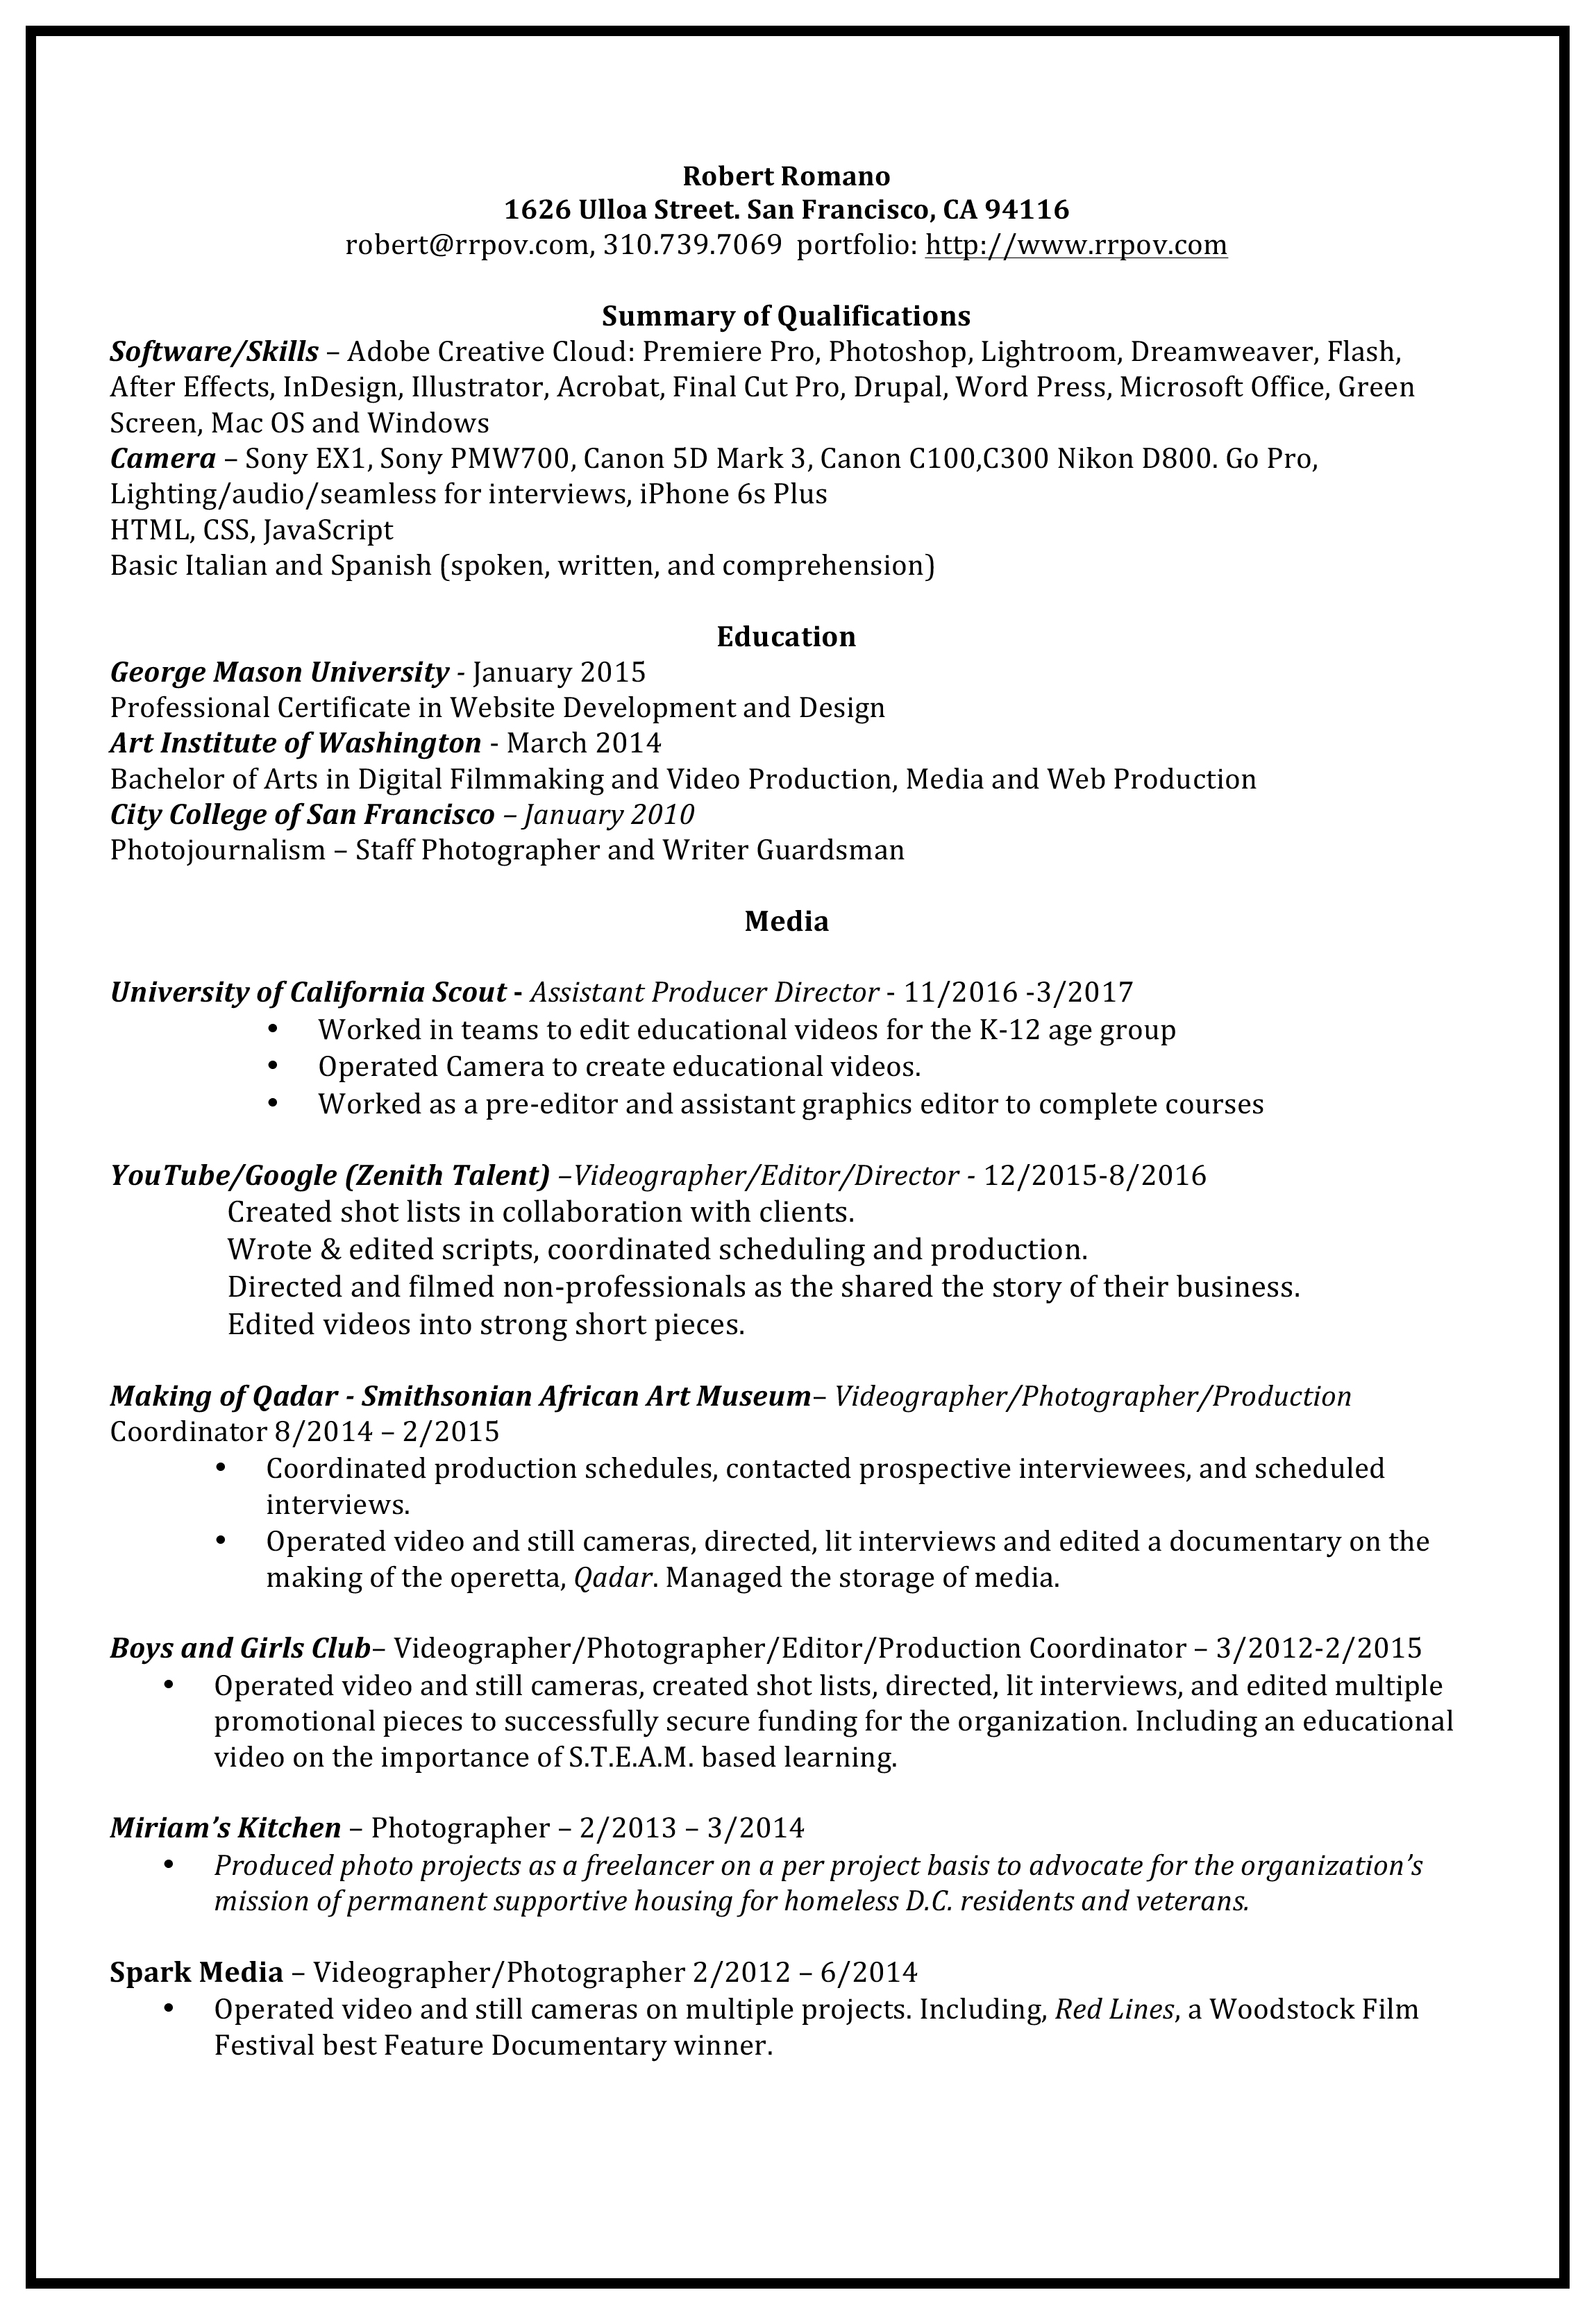 Download Robert Romano Resume